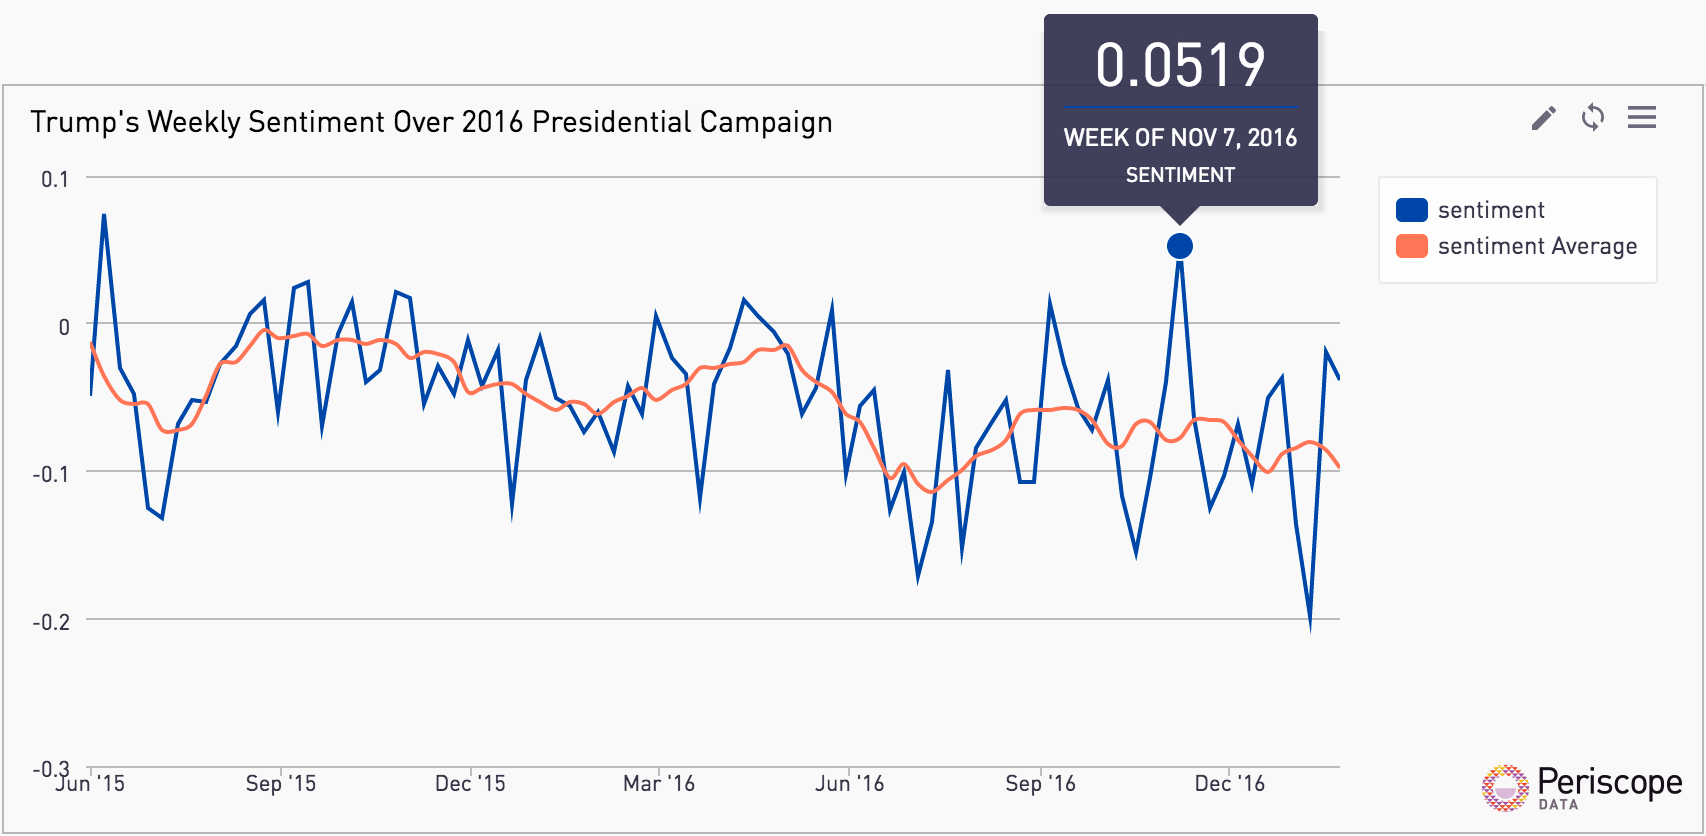 Trump's Weekly Sentiment over 2016 Presidential Campaign